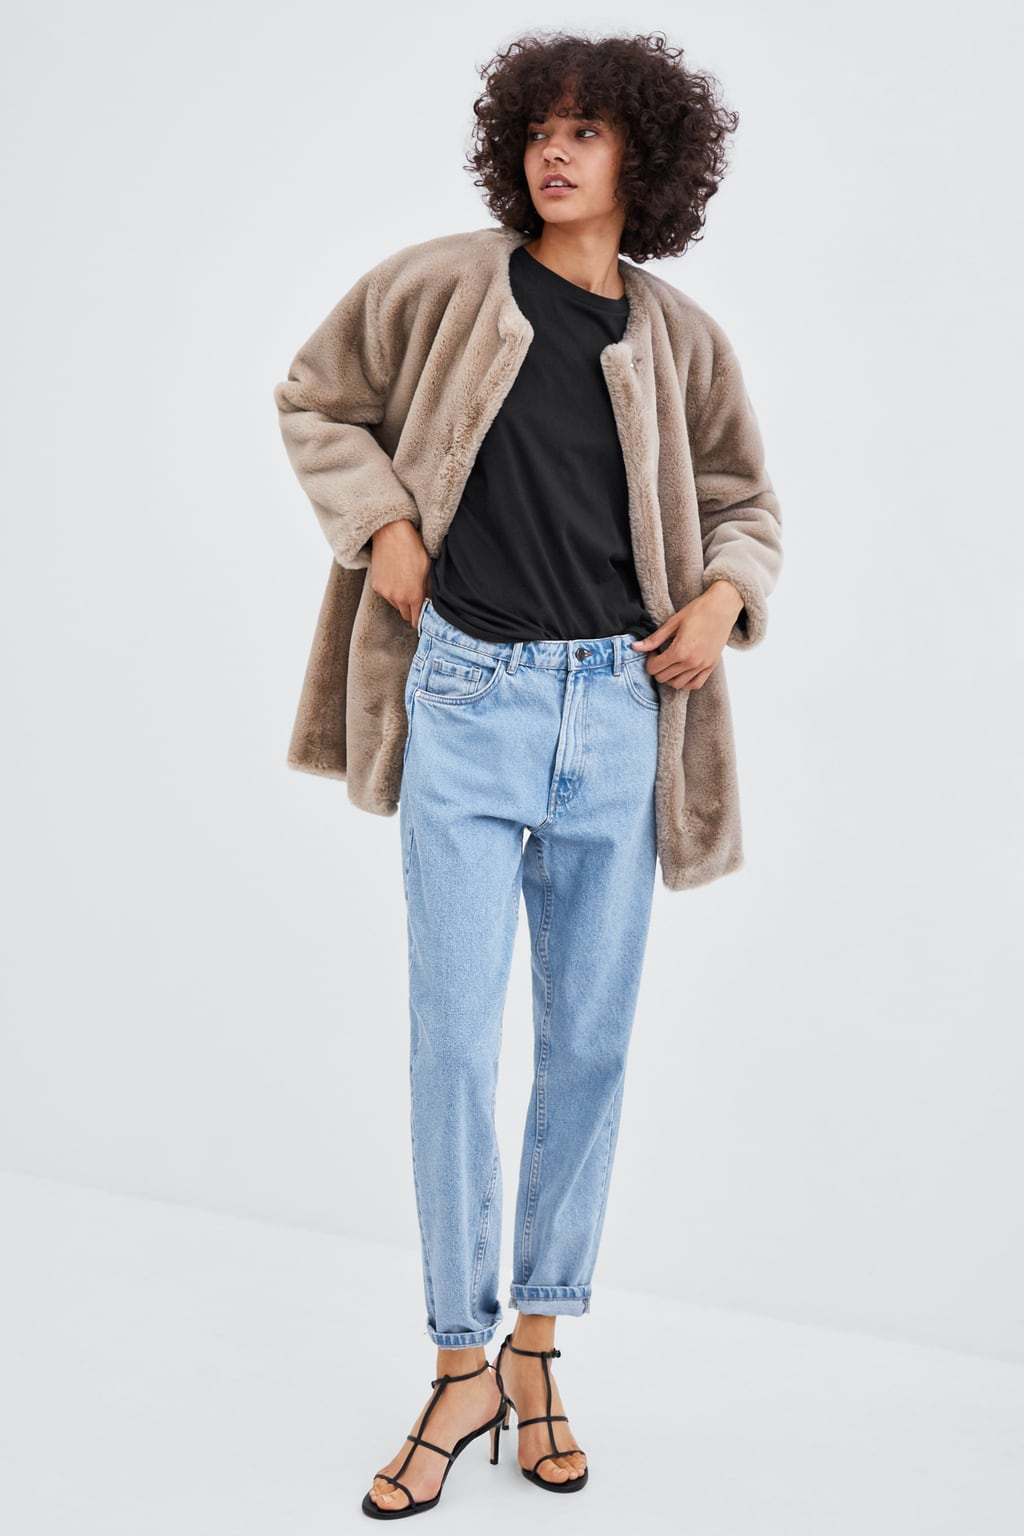 This BEAUTIFUL fur coat is somehow just €26 in Zara and we're confused